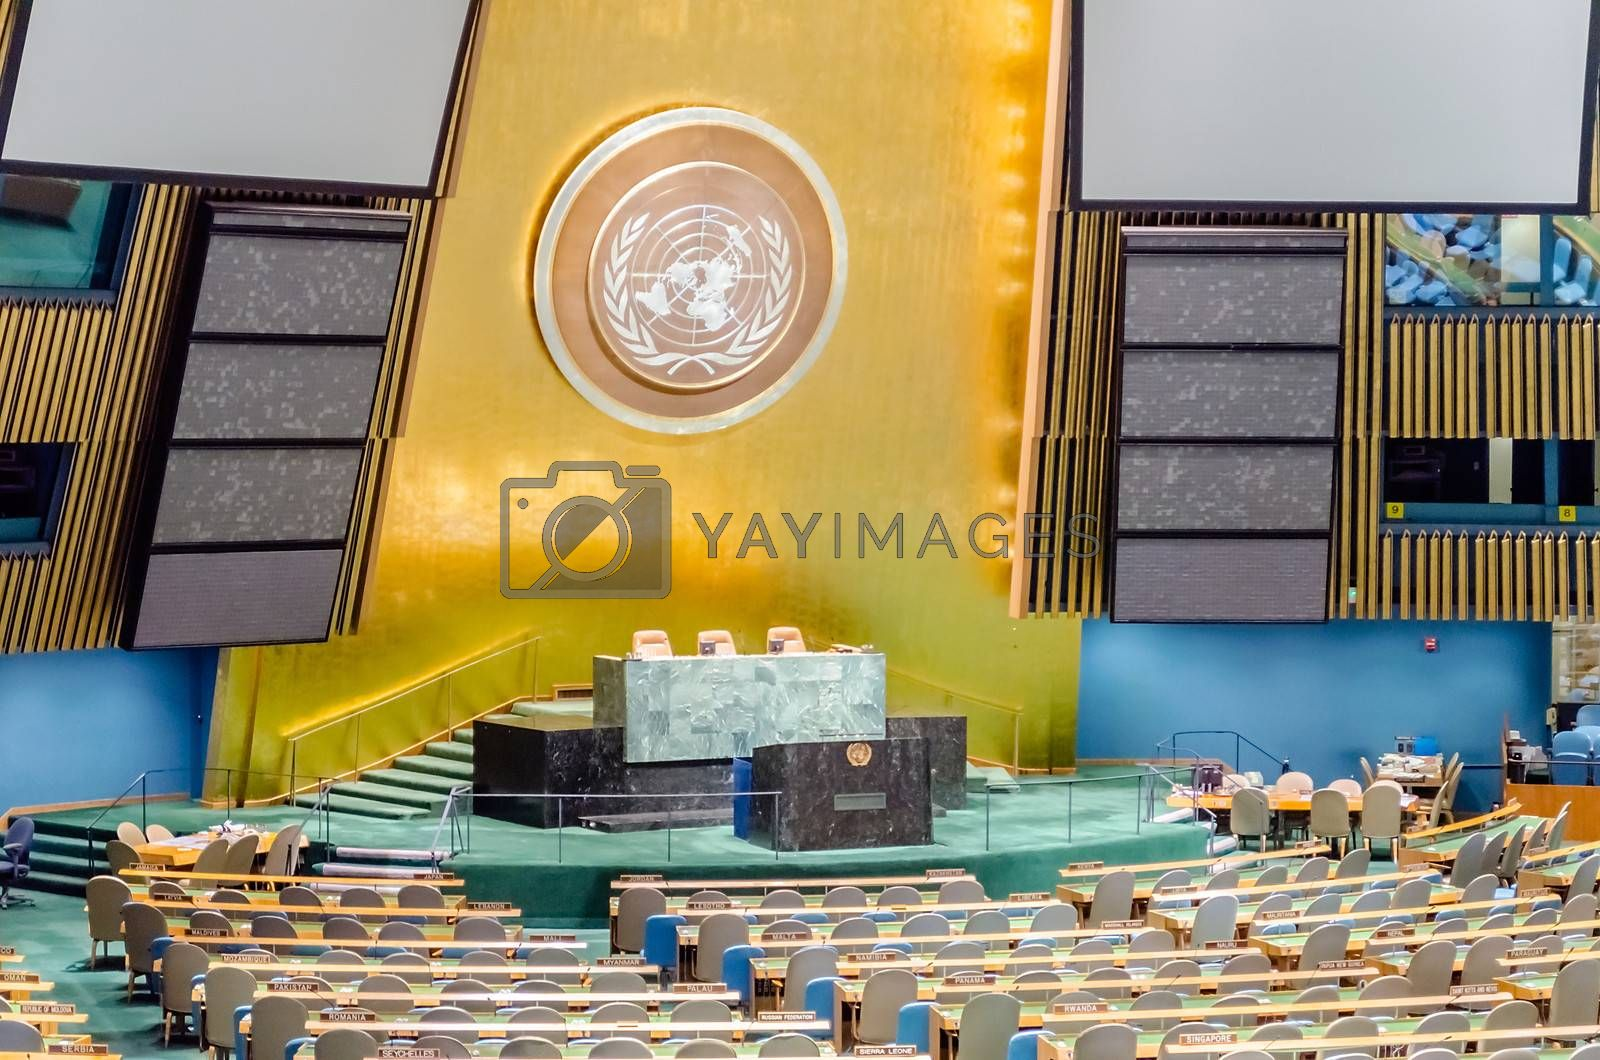 NEW YORK - MAY 28: The General Assembly Hall is the largest room in the United Nations with seating capacity for over 1,800 people. May 28, 2013 in Manhattan, New York City